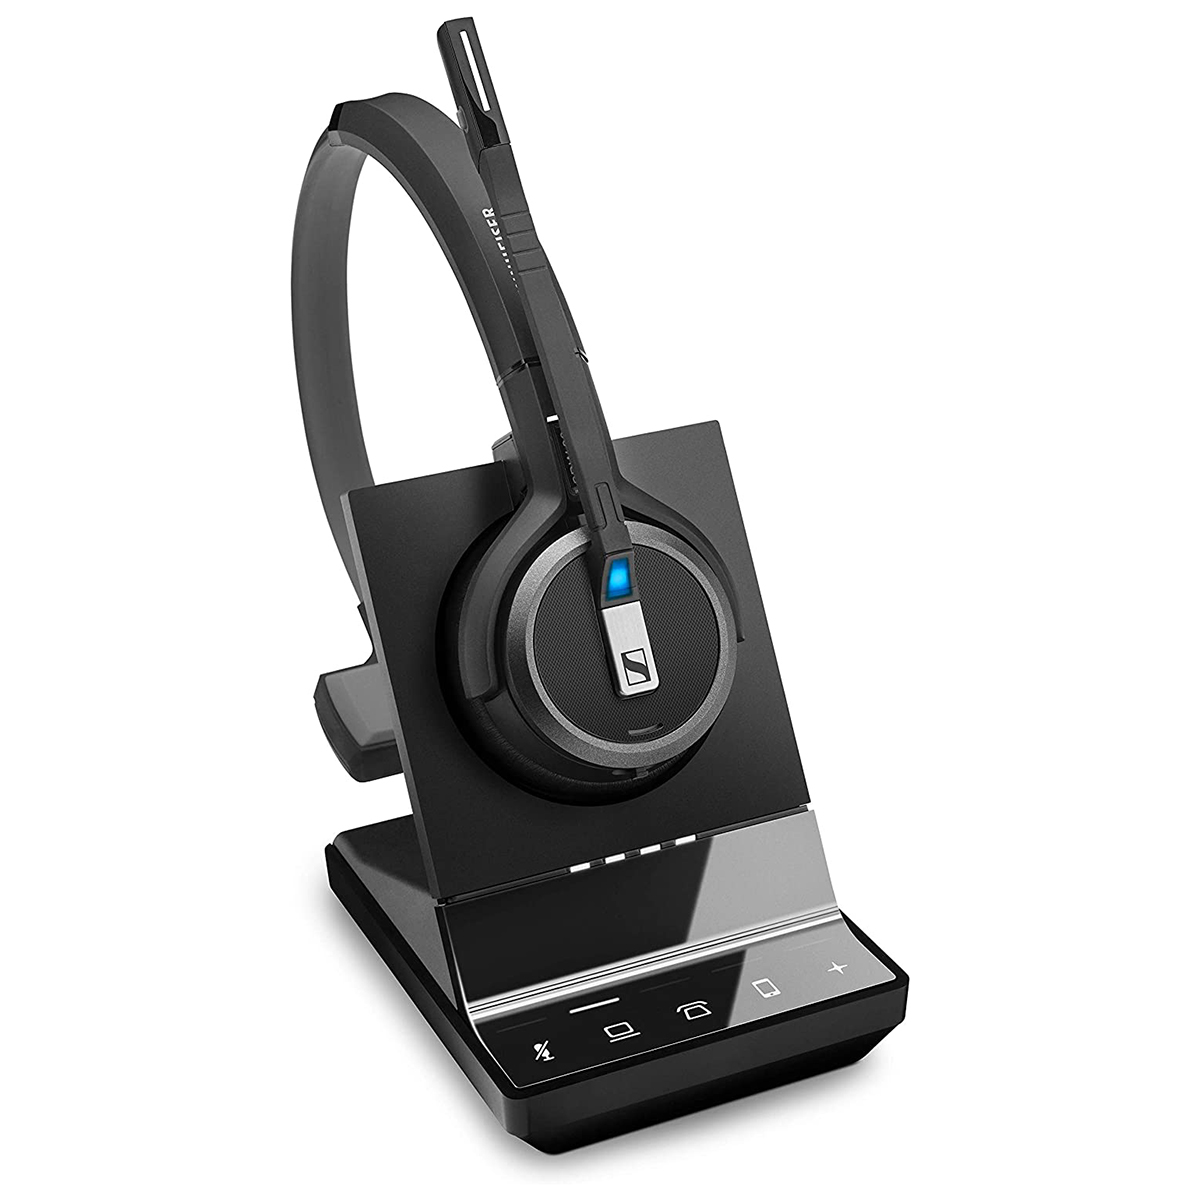 EPOS Sennheiser IMPACT SDW 5035 Wireless 3 in 1 Headset and Base